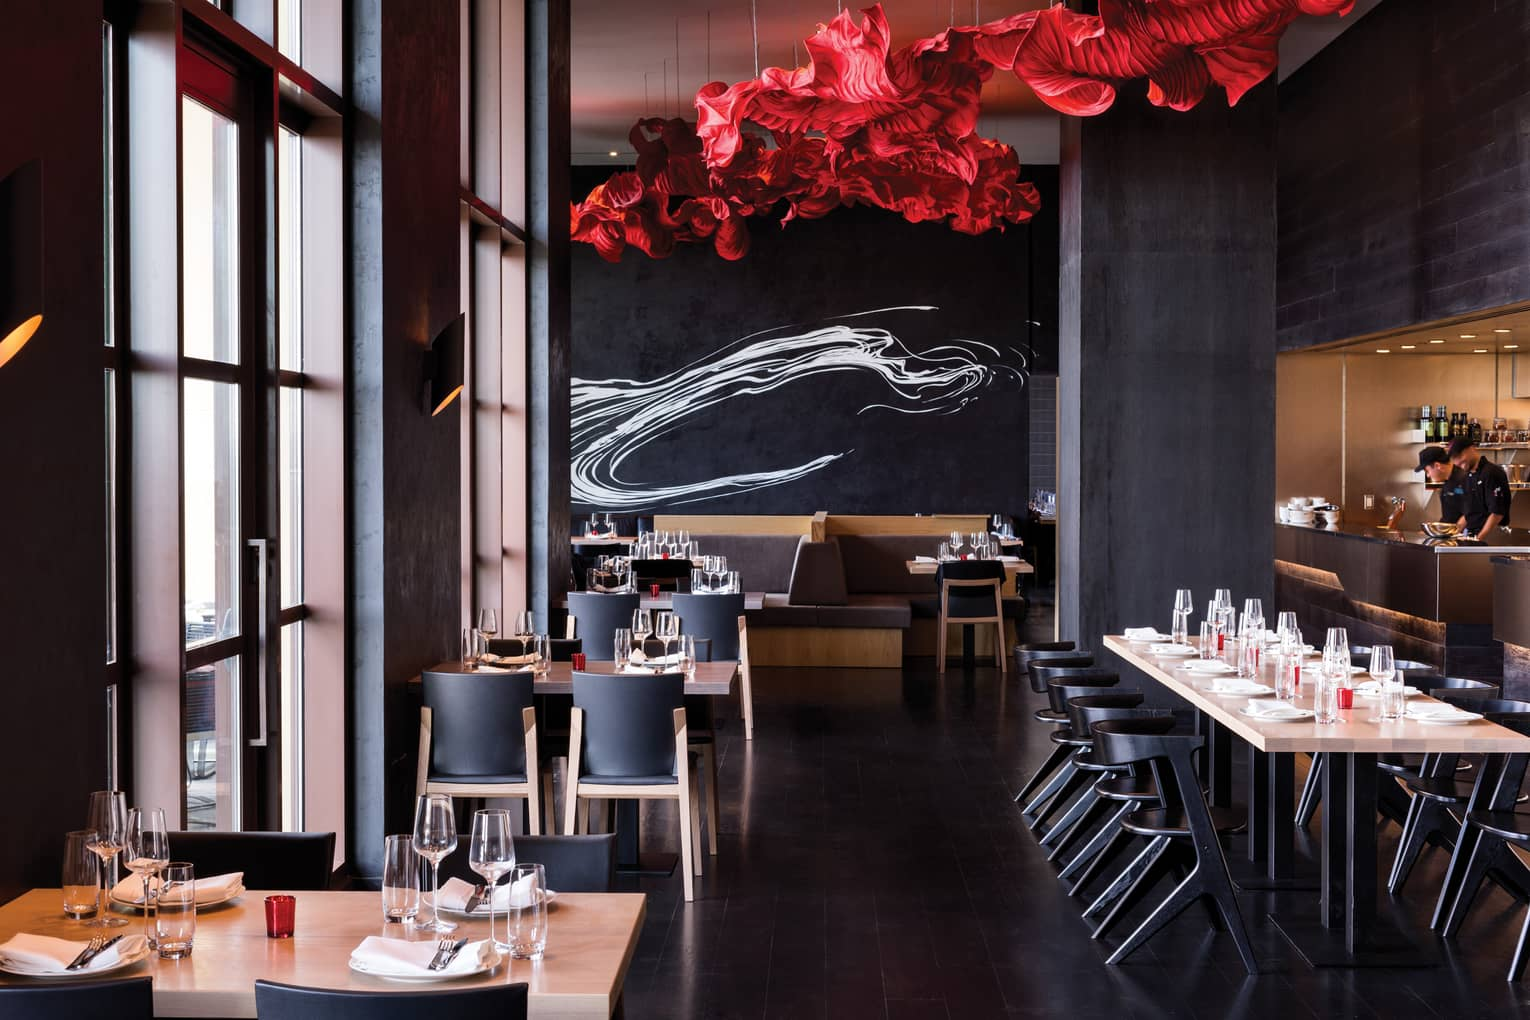 A red sculpture on the ceiling and red and white accents illuminate the Capa dining room